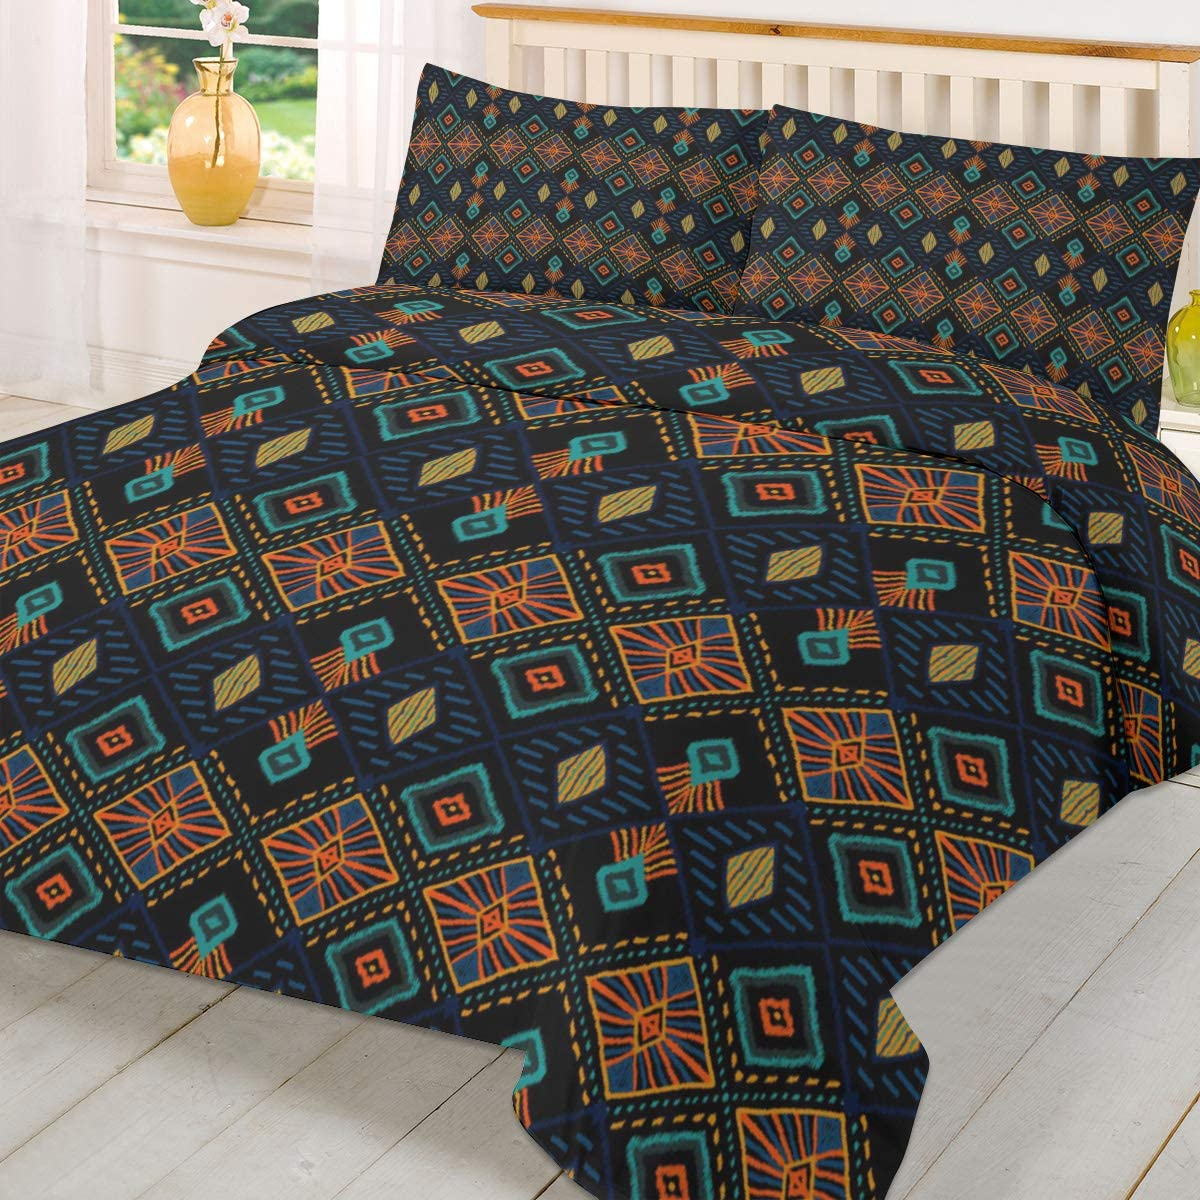 Olivefox Queen Duvet trust Cover Set Comfort Ranking TOP14 Style Fill Pattern Ethnic